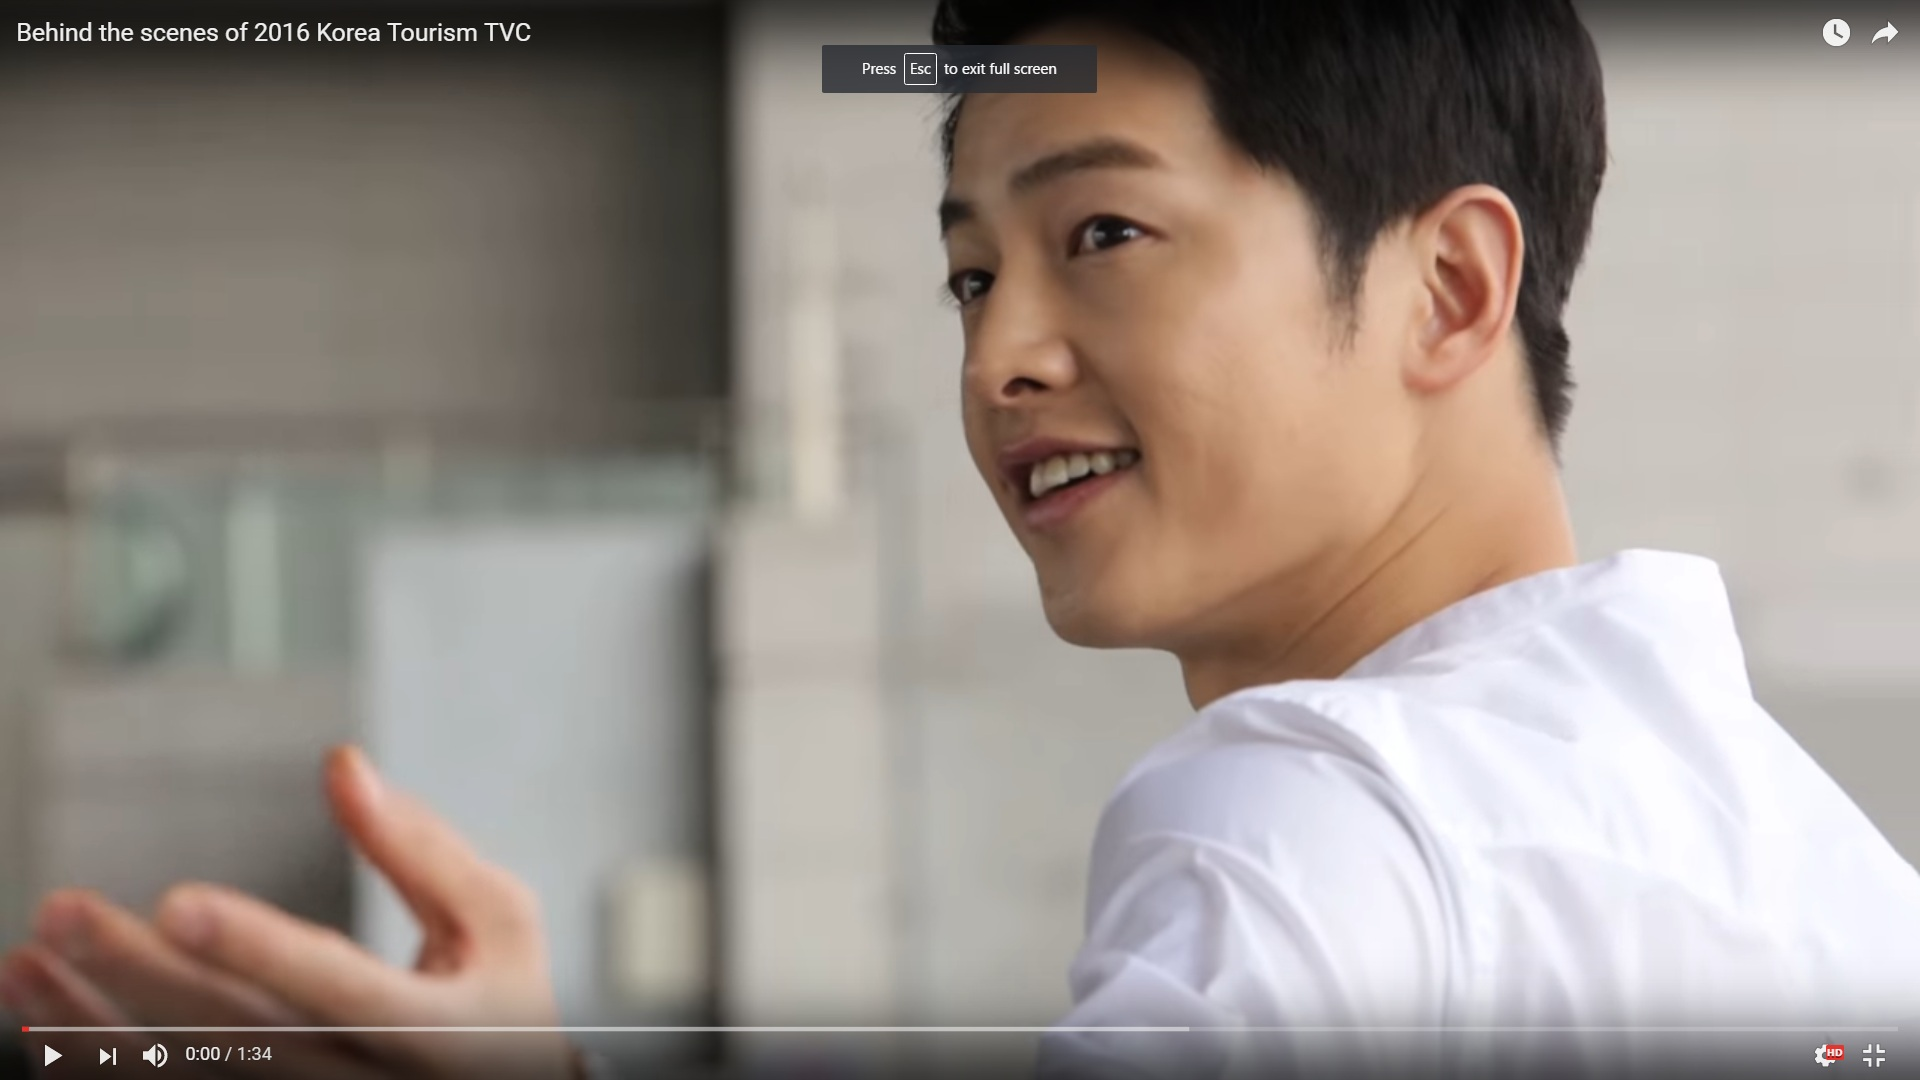 Behind the scenes of 2016 Korea Tourism TVC